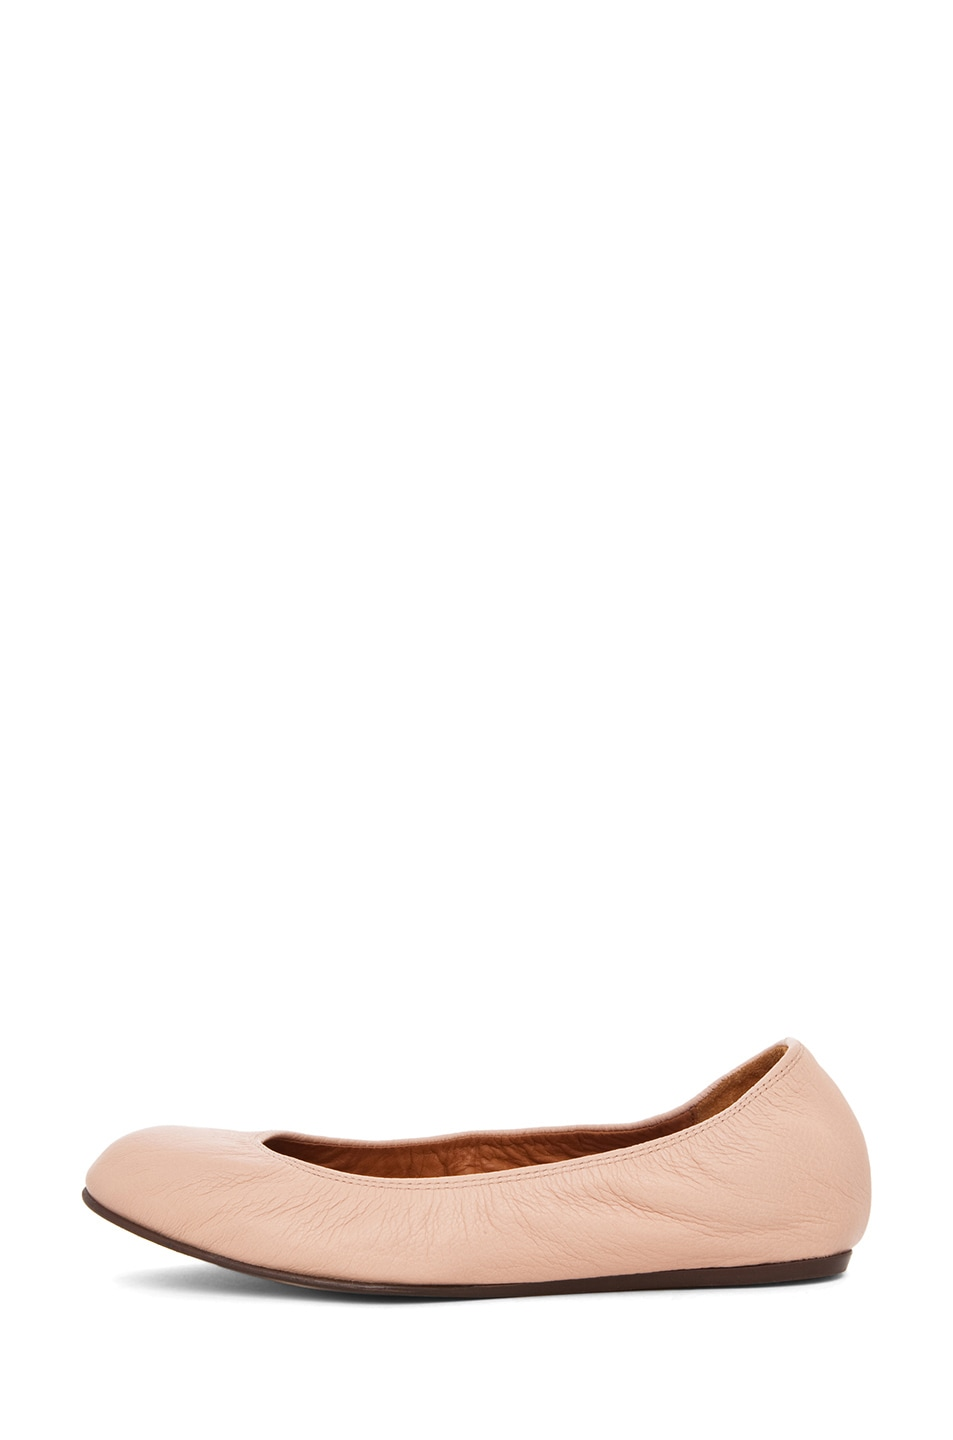 Image 1 of Lanvin Classic Ballerina Flat in Light Pink